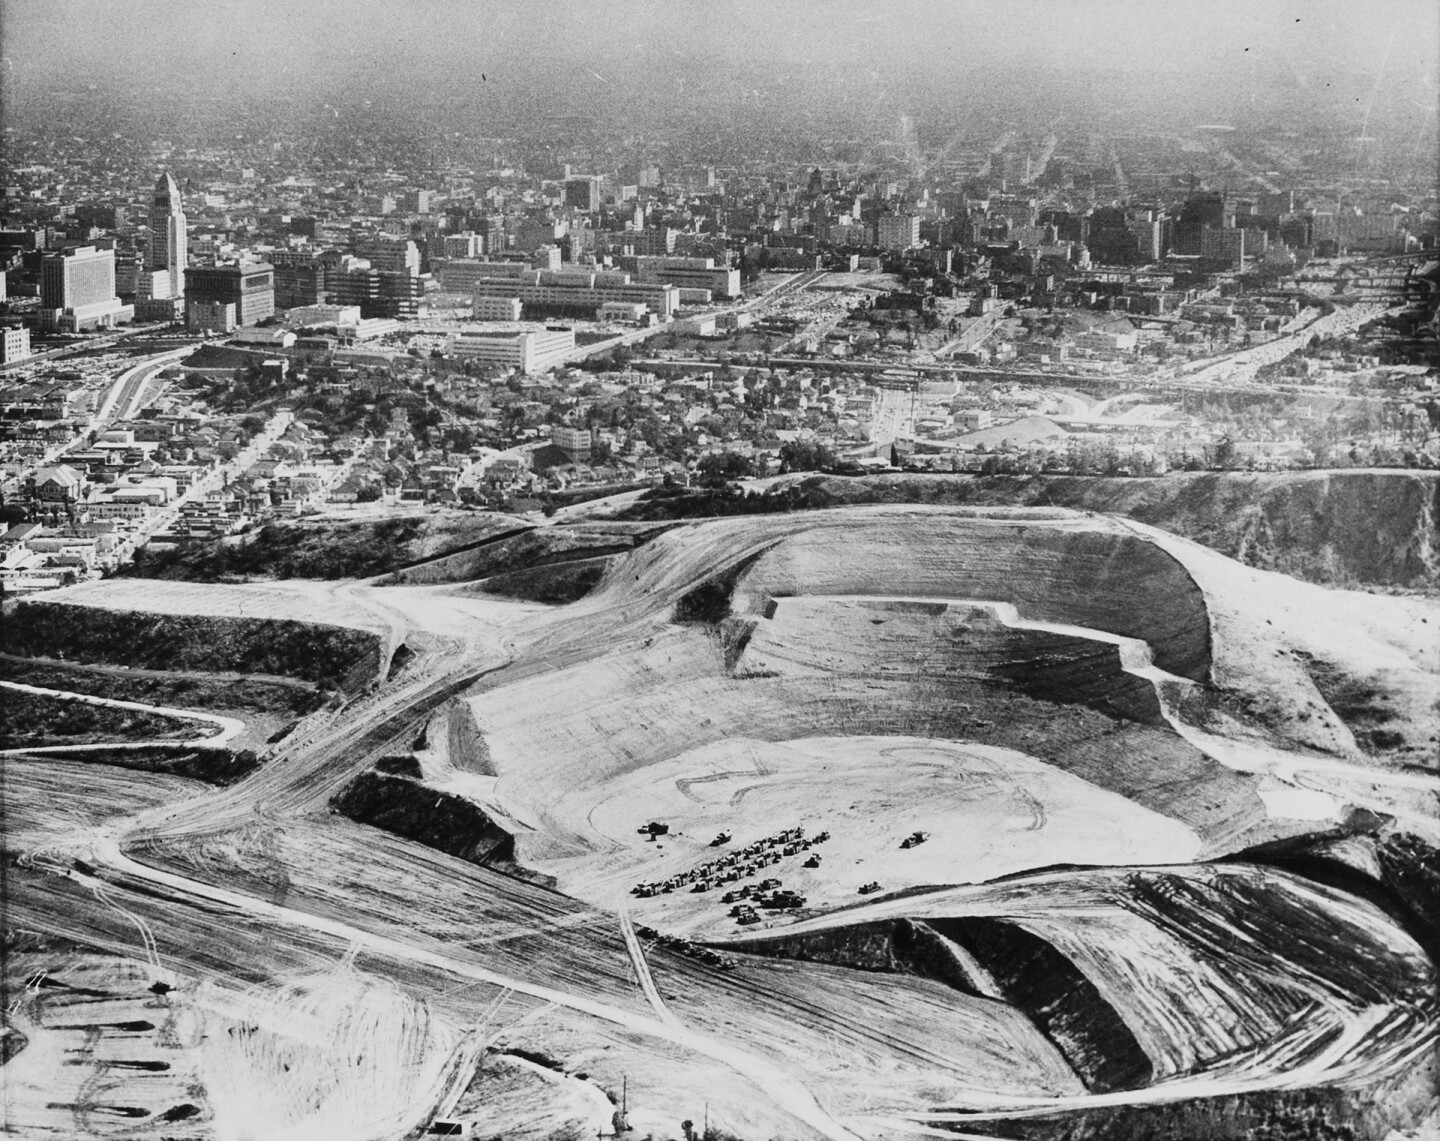 Dodger Stadium under construction on May 25, 1960. Courtesy of the USC Libraries - Los Angeles Examiner Collection.